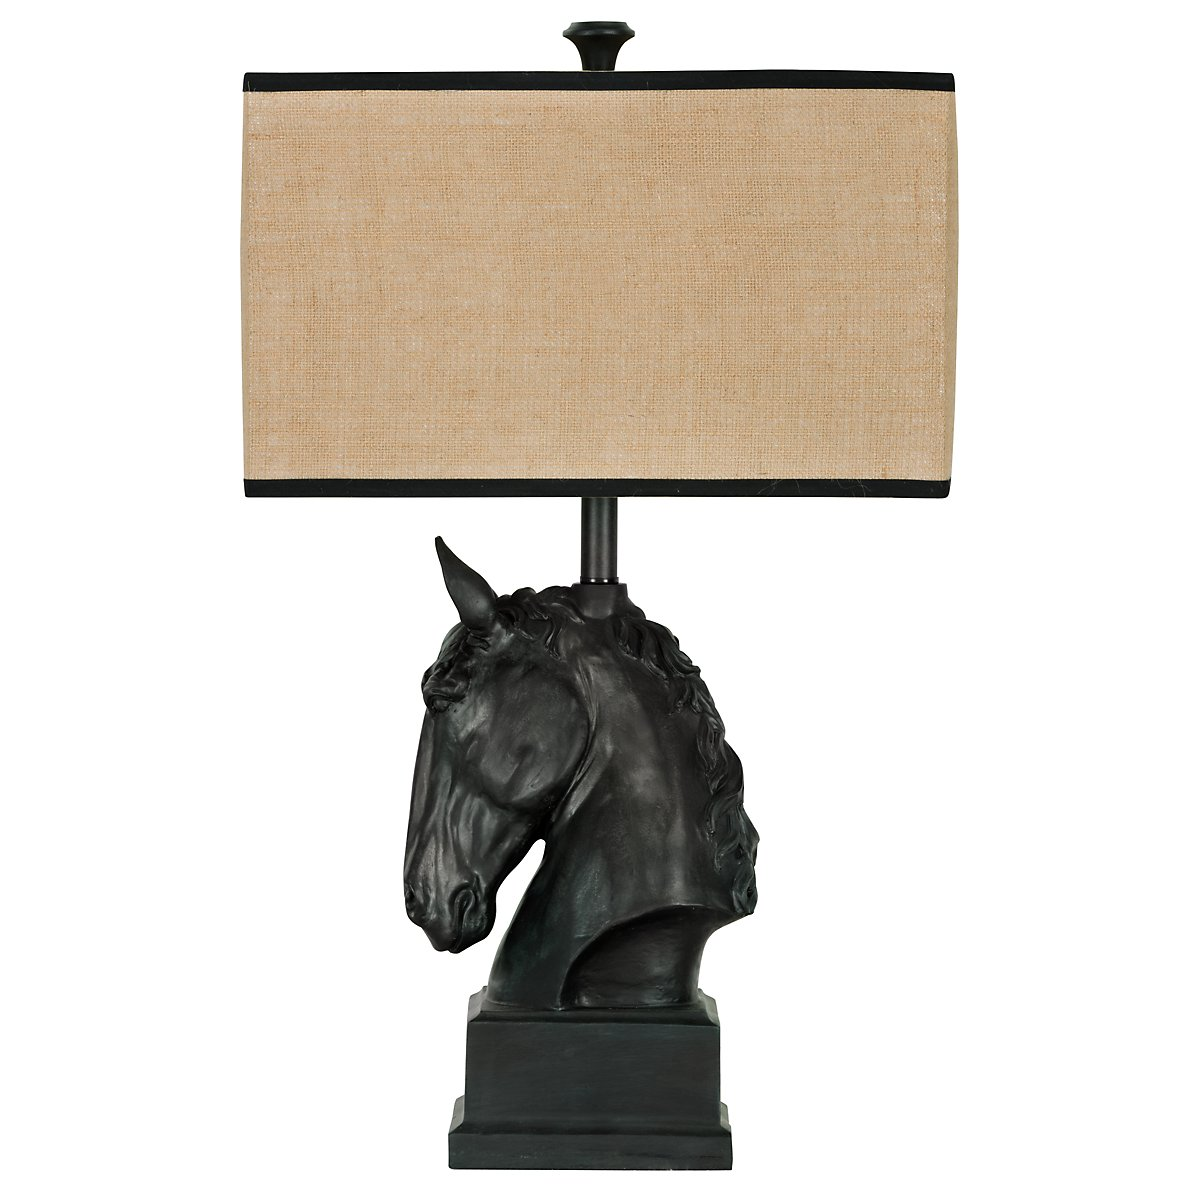 Stallion Black Table Lamp